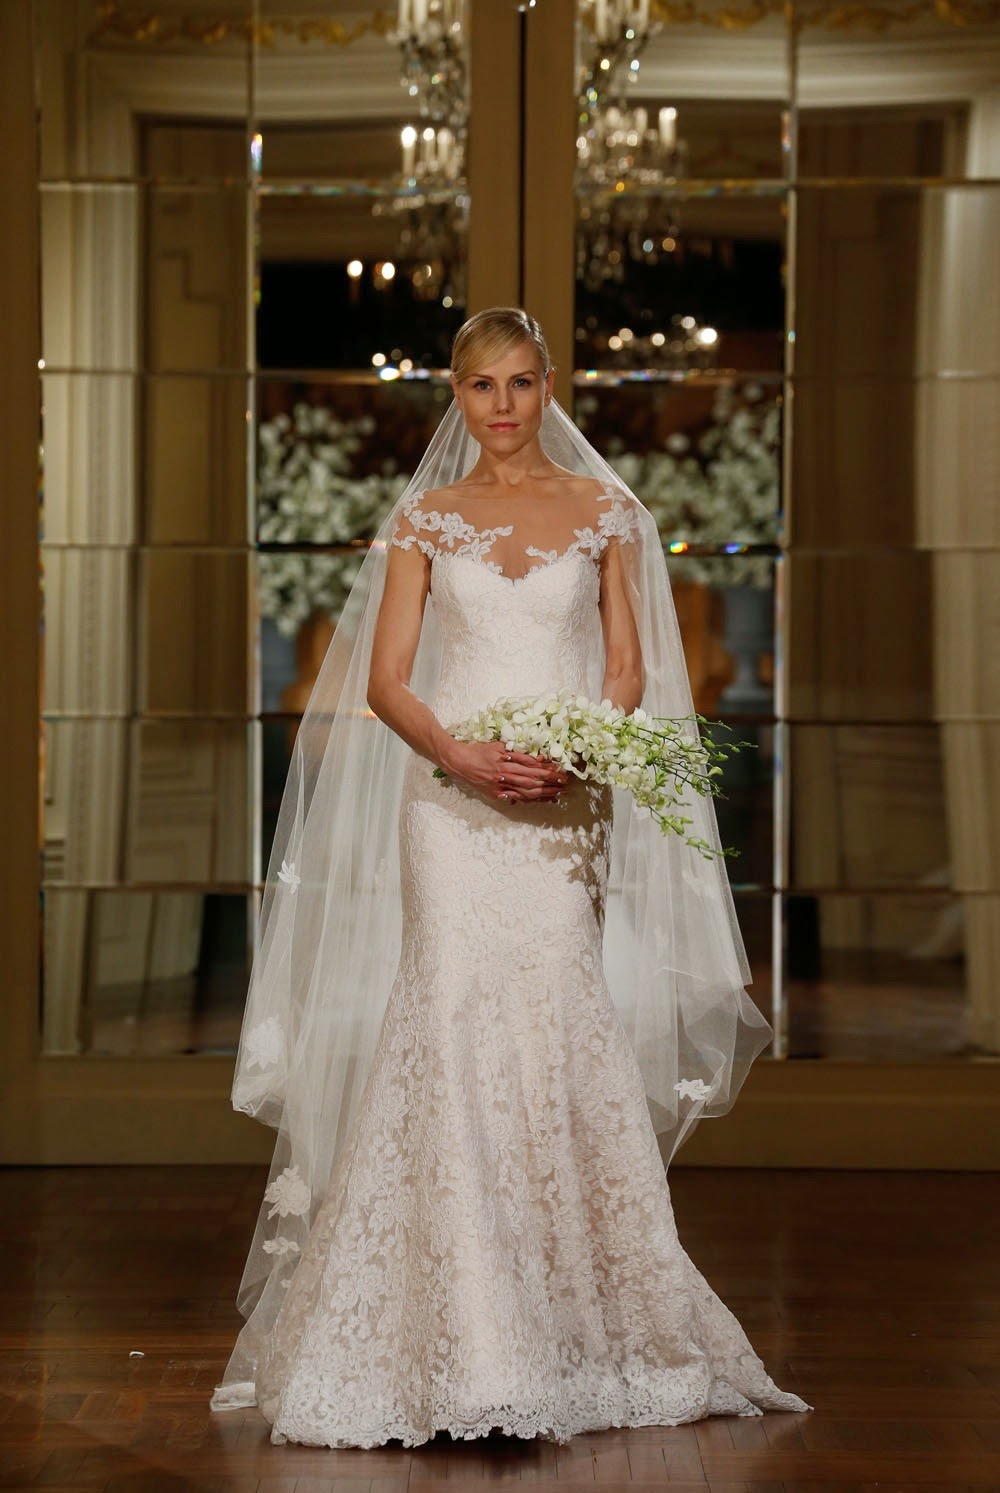 ab0de5b35abc Legends by Romona Keveza Spring 2015 Wedding Dresses - Runway ...